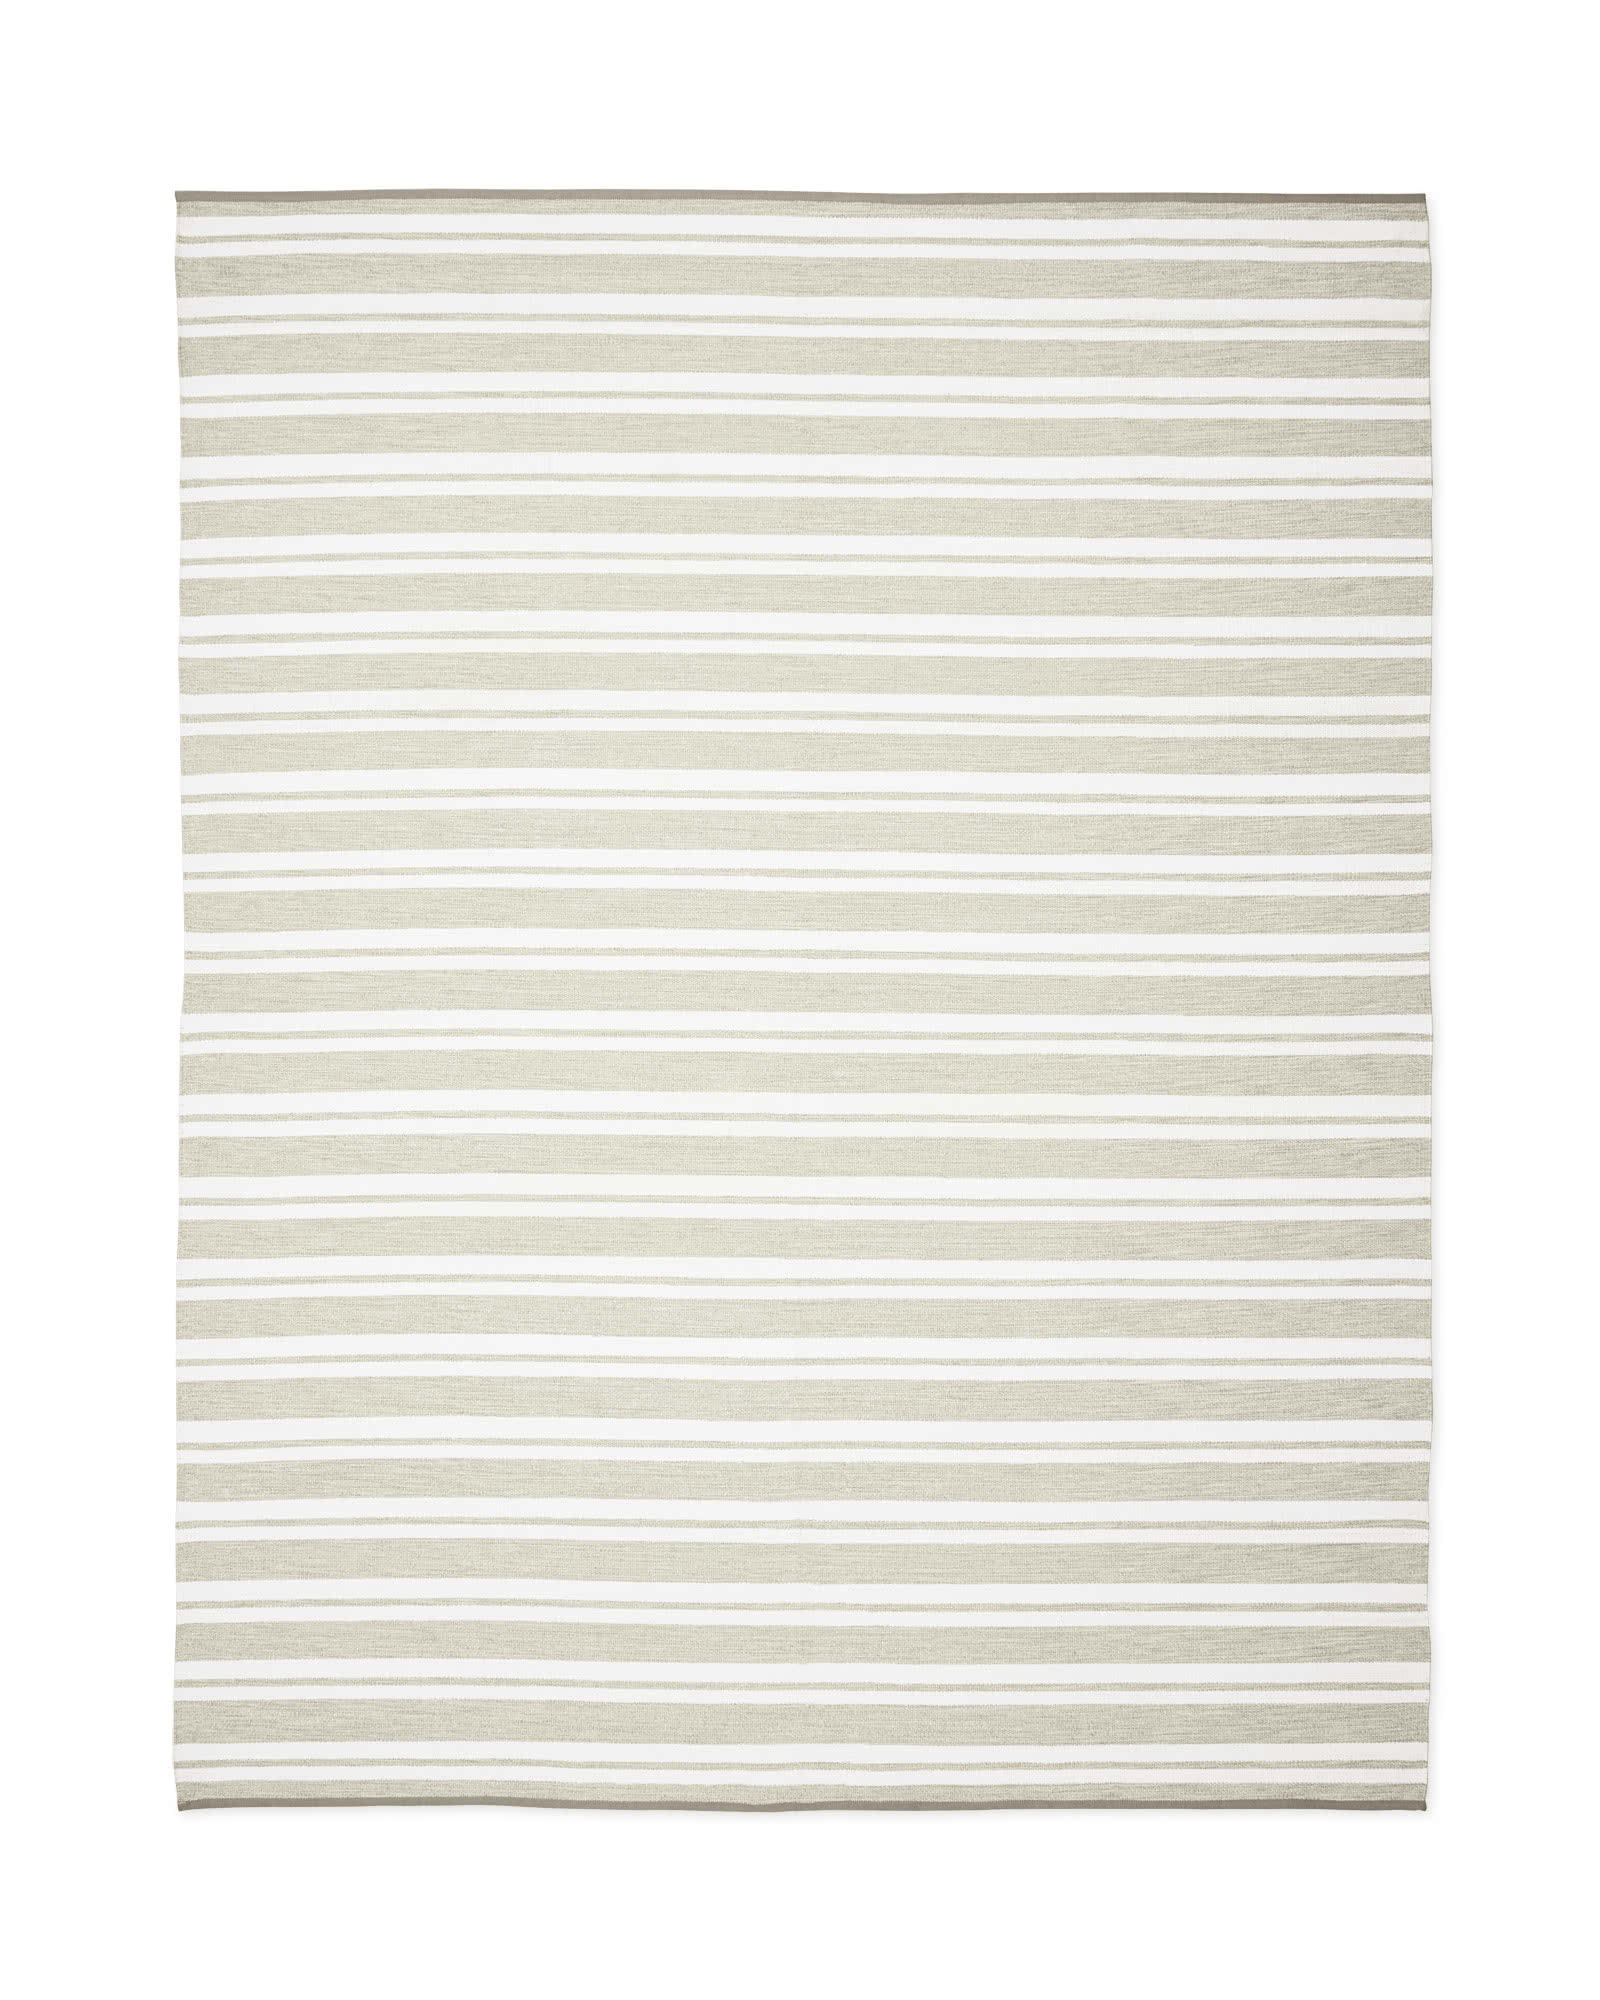 Perennials® Rhodes Outdoor Rug,